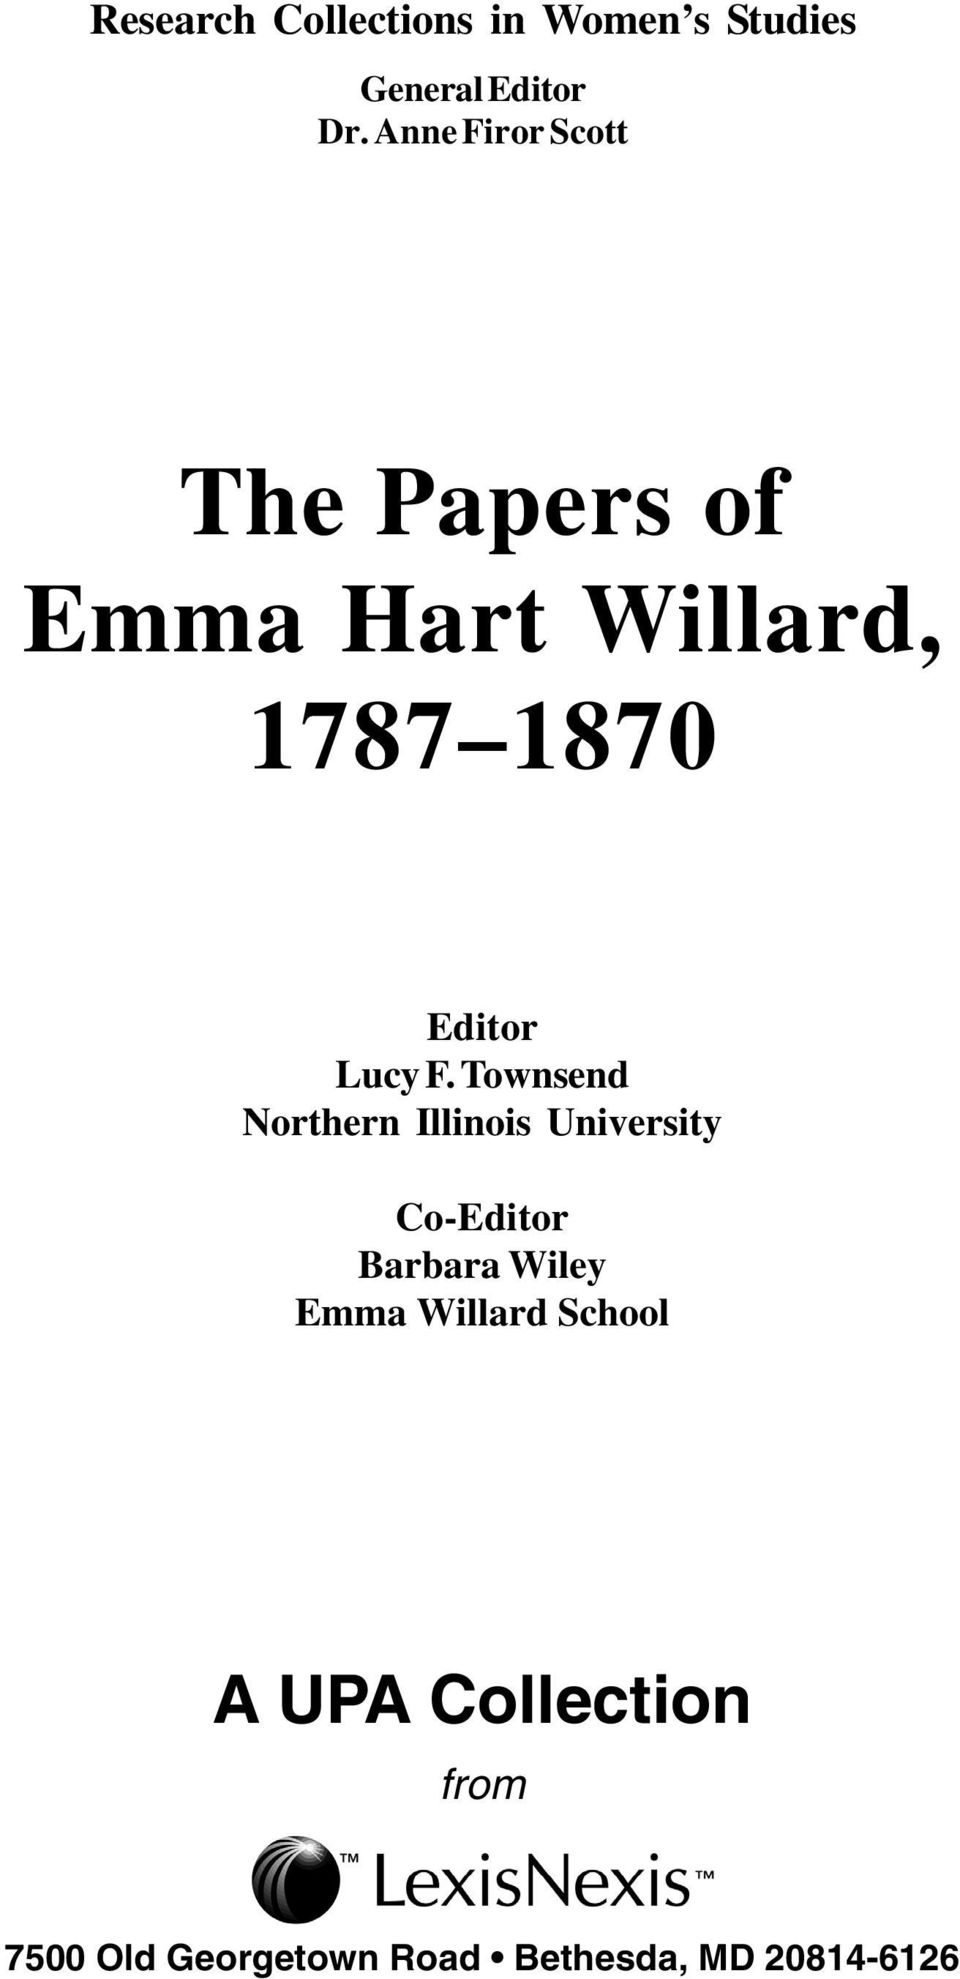 F. Townsend Northern Illinois University Co-Editor Barbara Wiley Emma